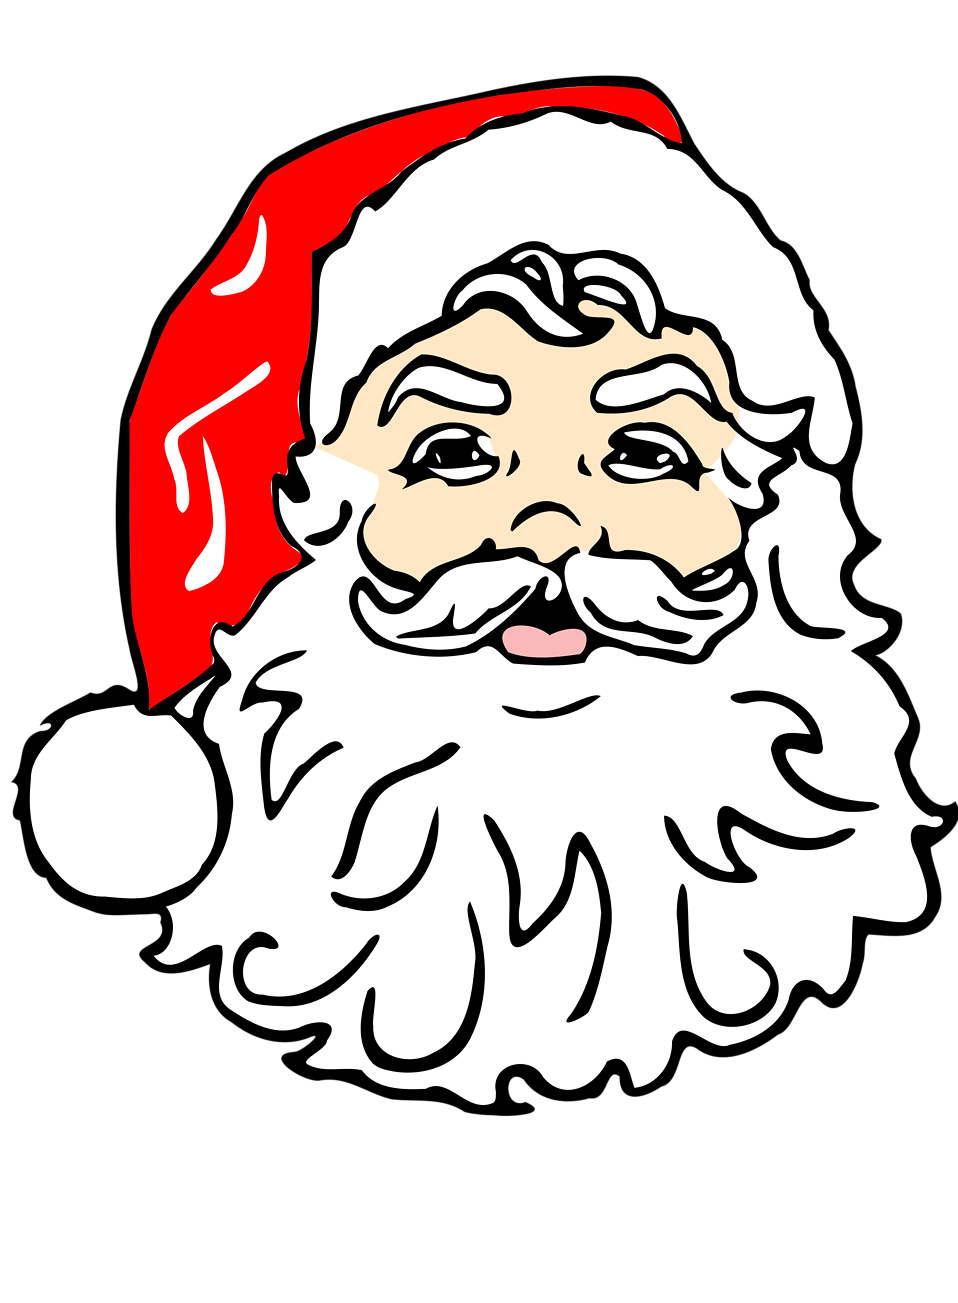 Santa Claus Illustrations.